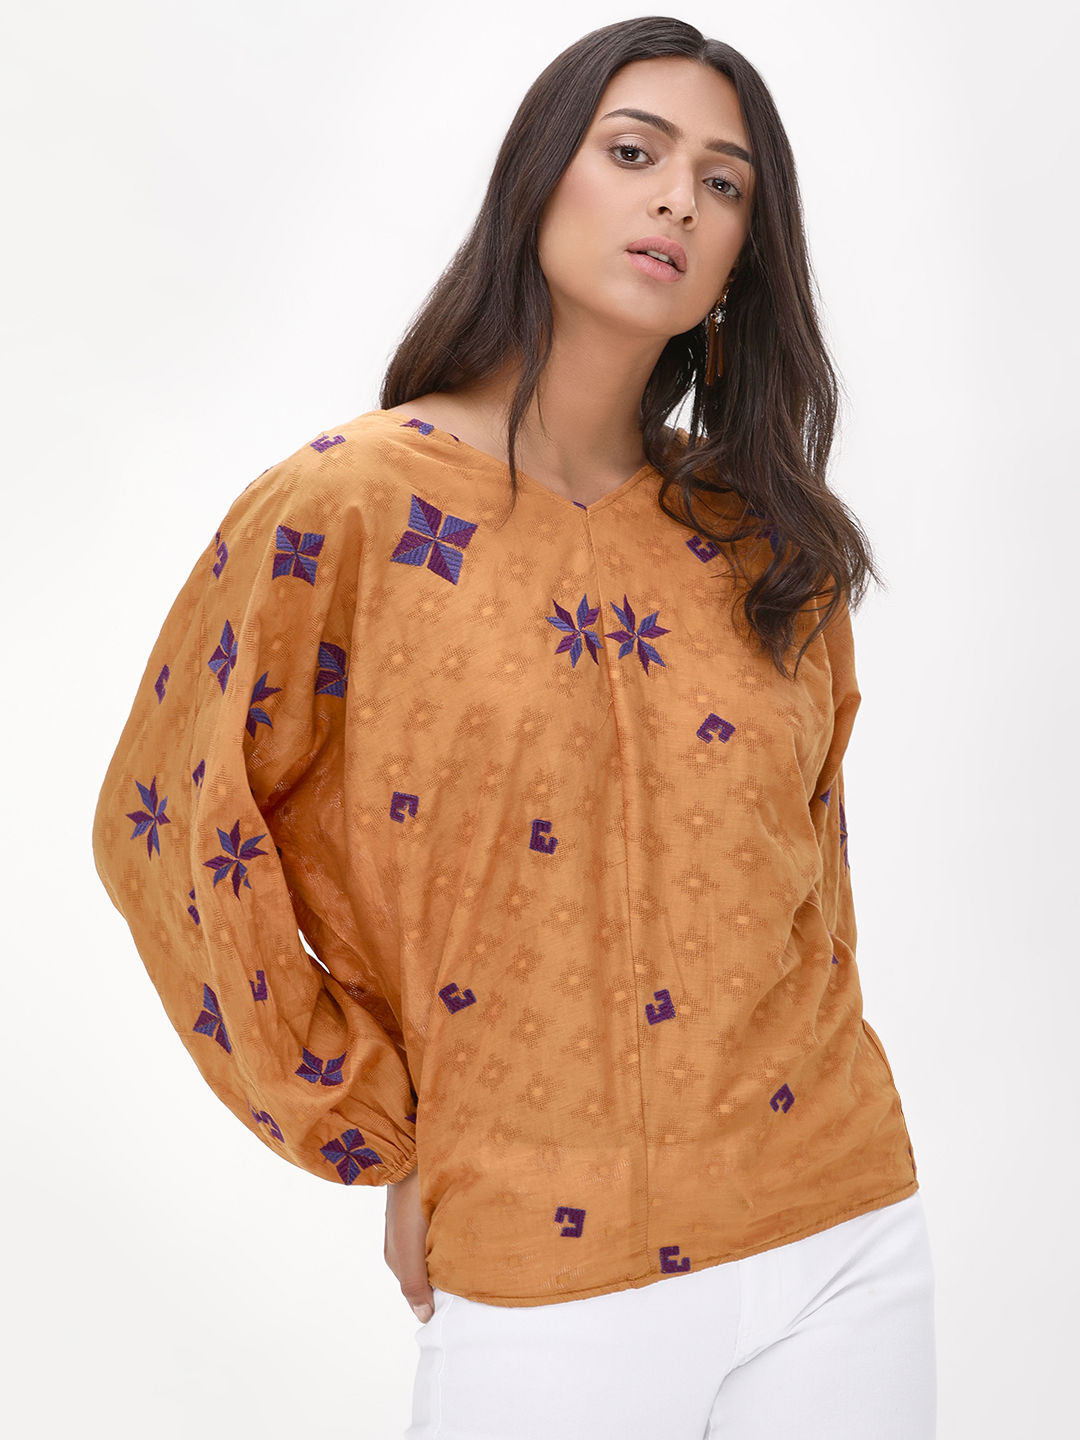 Rena Love Mustard Kimono Top With Embroidery 1